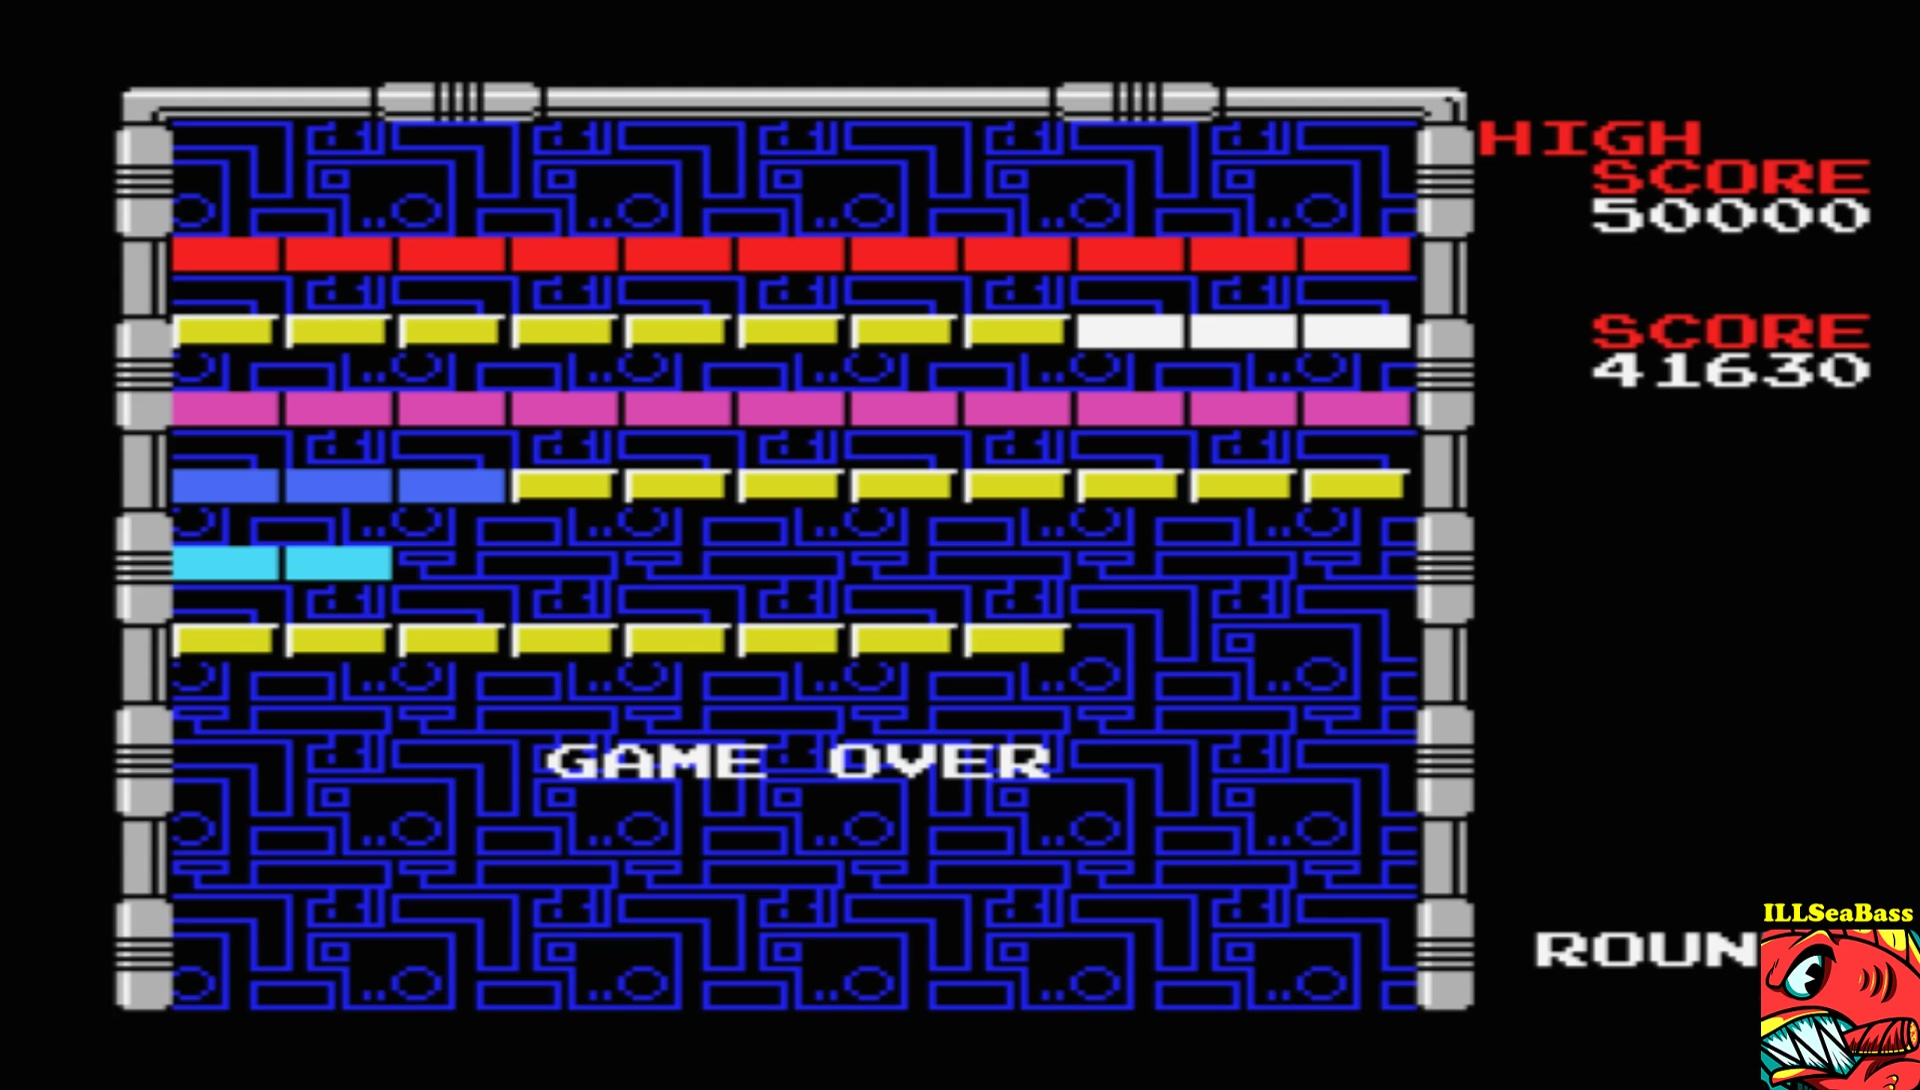 ILLSeaBass: Arkanoid (MSX Emulated) 41,630 points on 2017-04-08 23:35:26